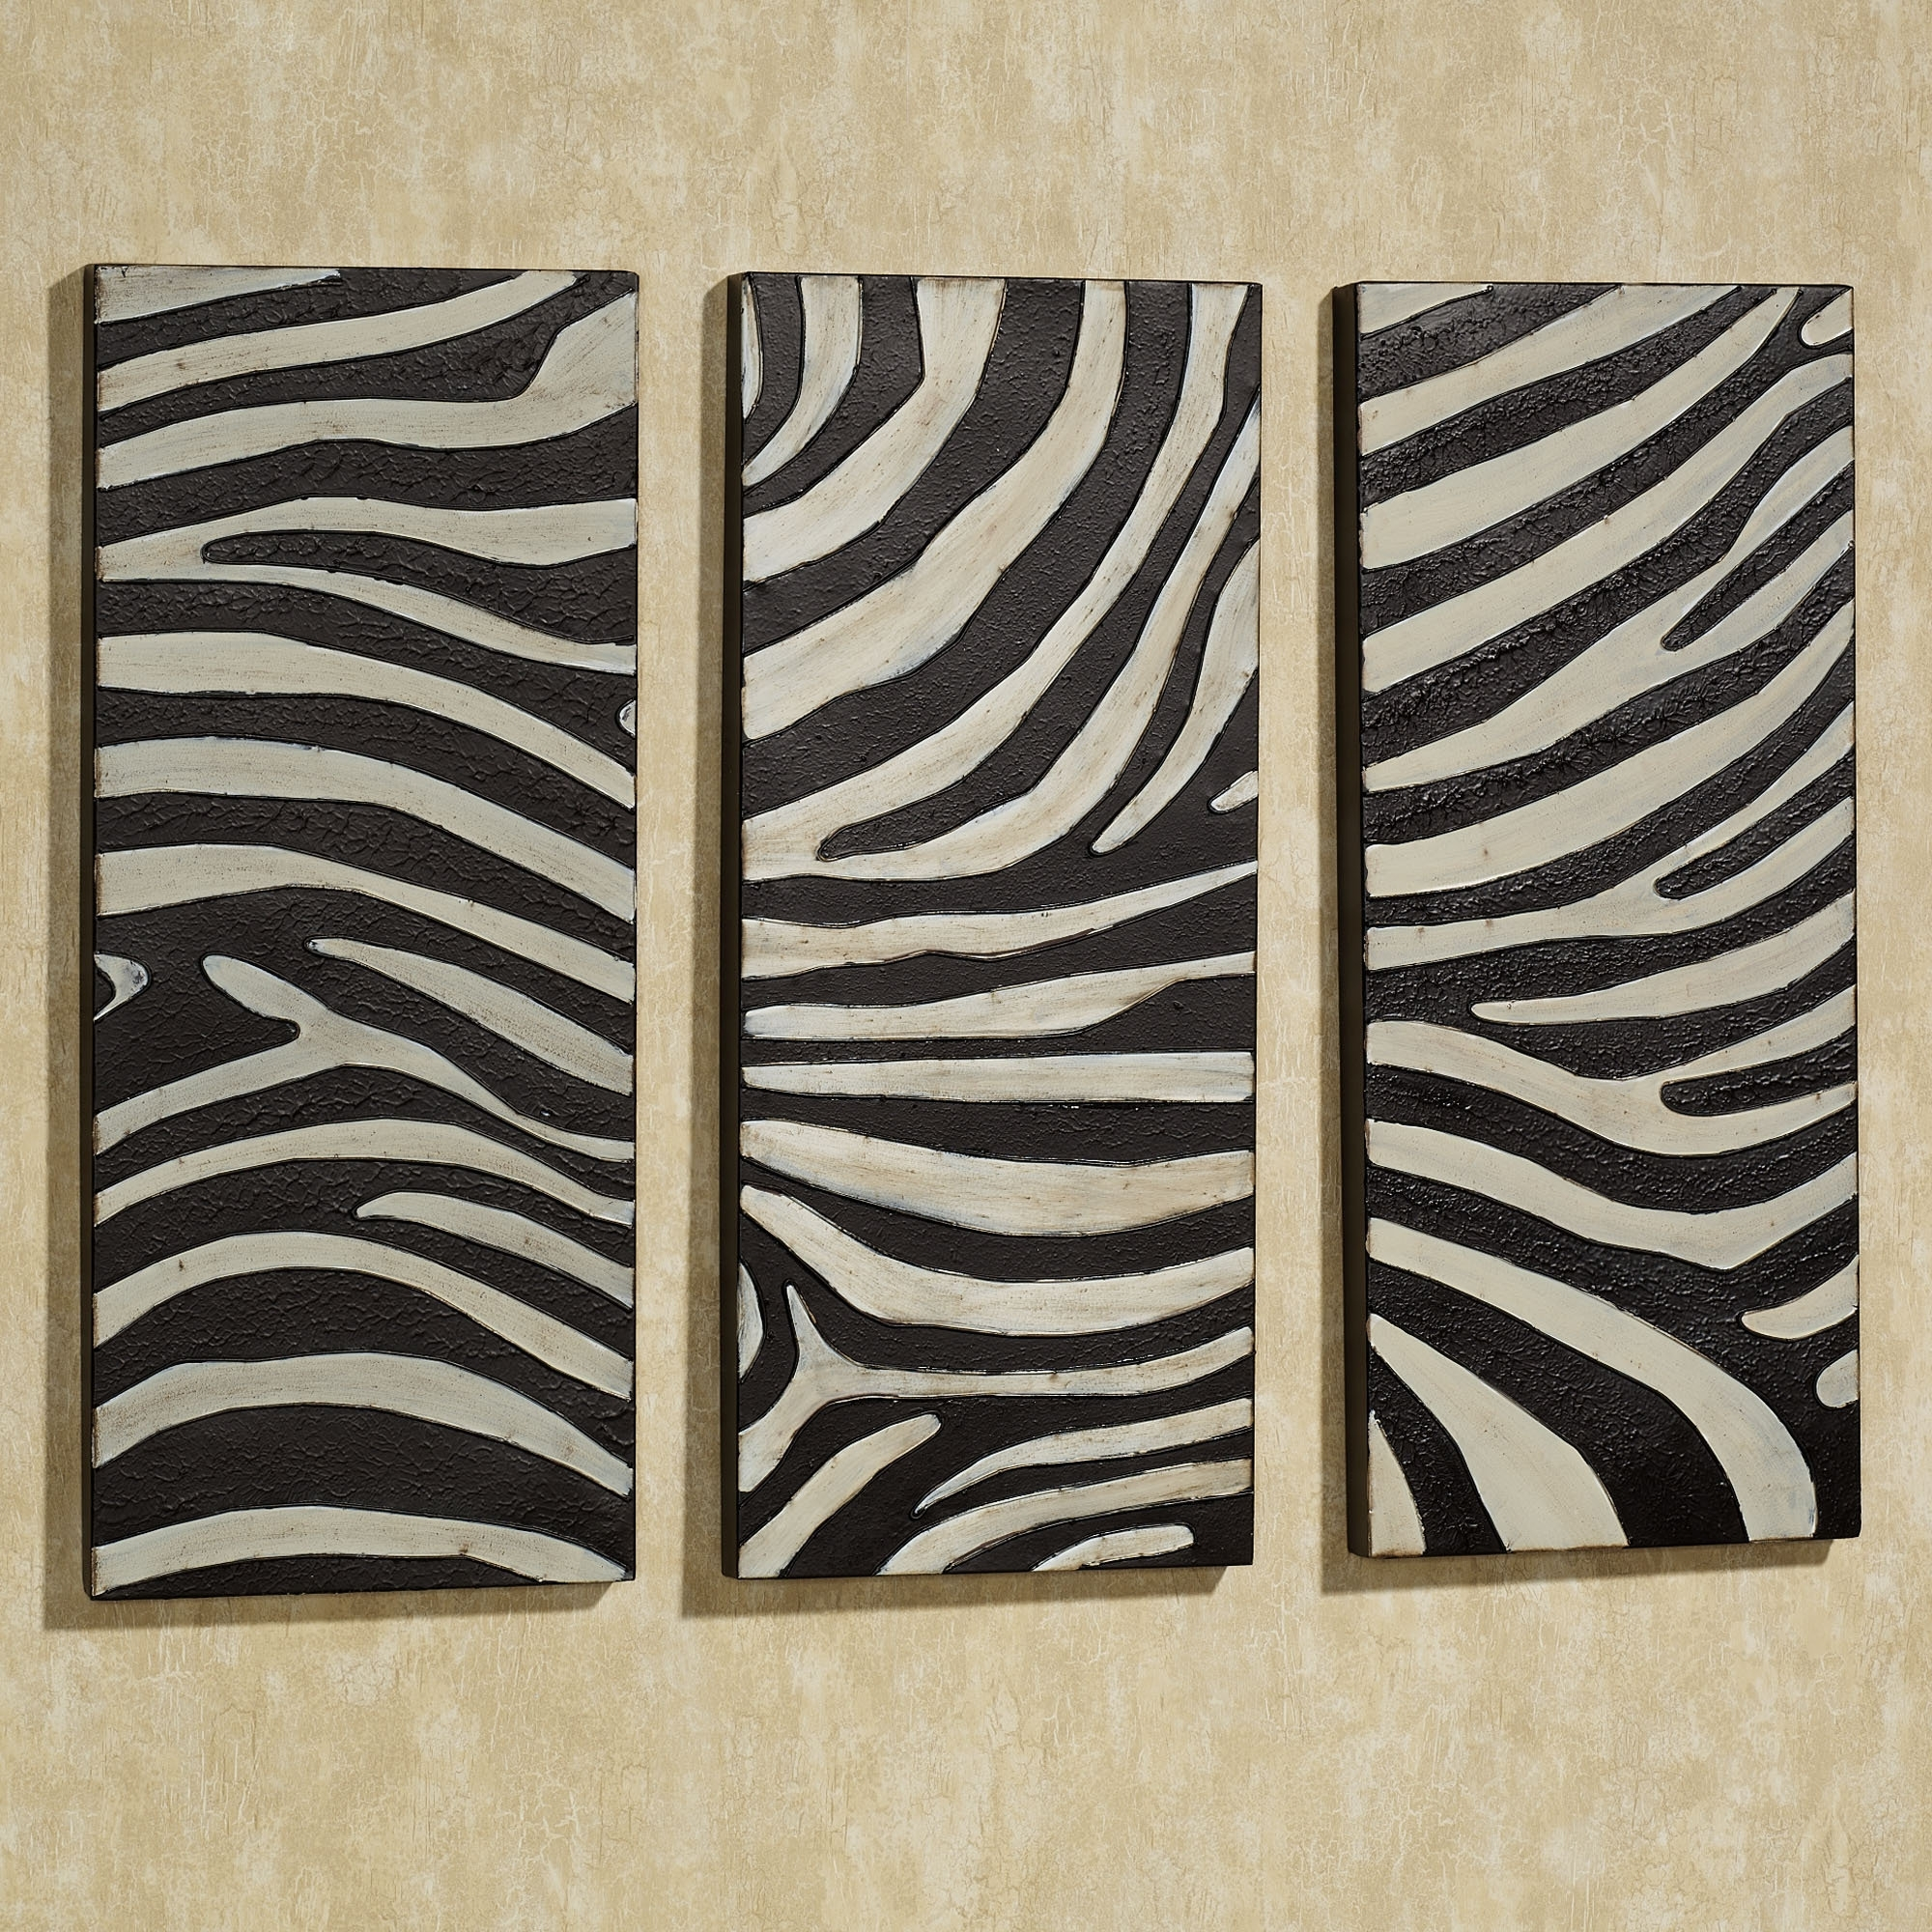 Wall Art Ideas Design : Squared Shaped Zebra Wall Art Body Animals Regarding Latest Zebra Wall Art Canvas (View 8 of 15)